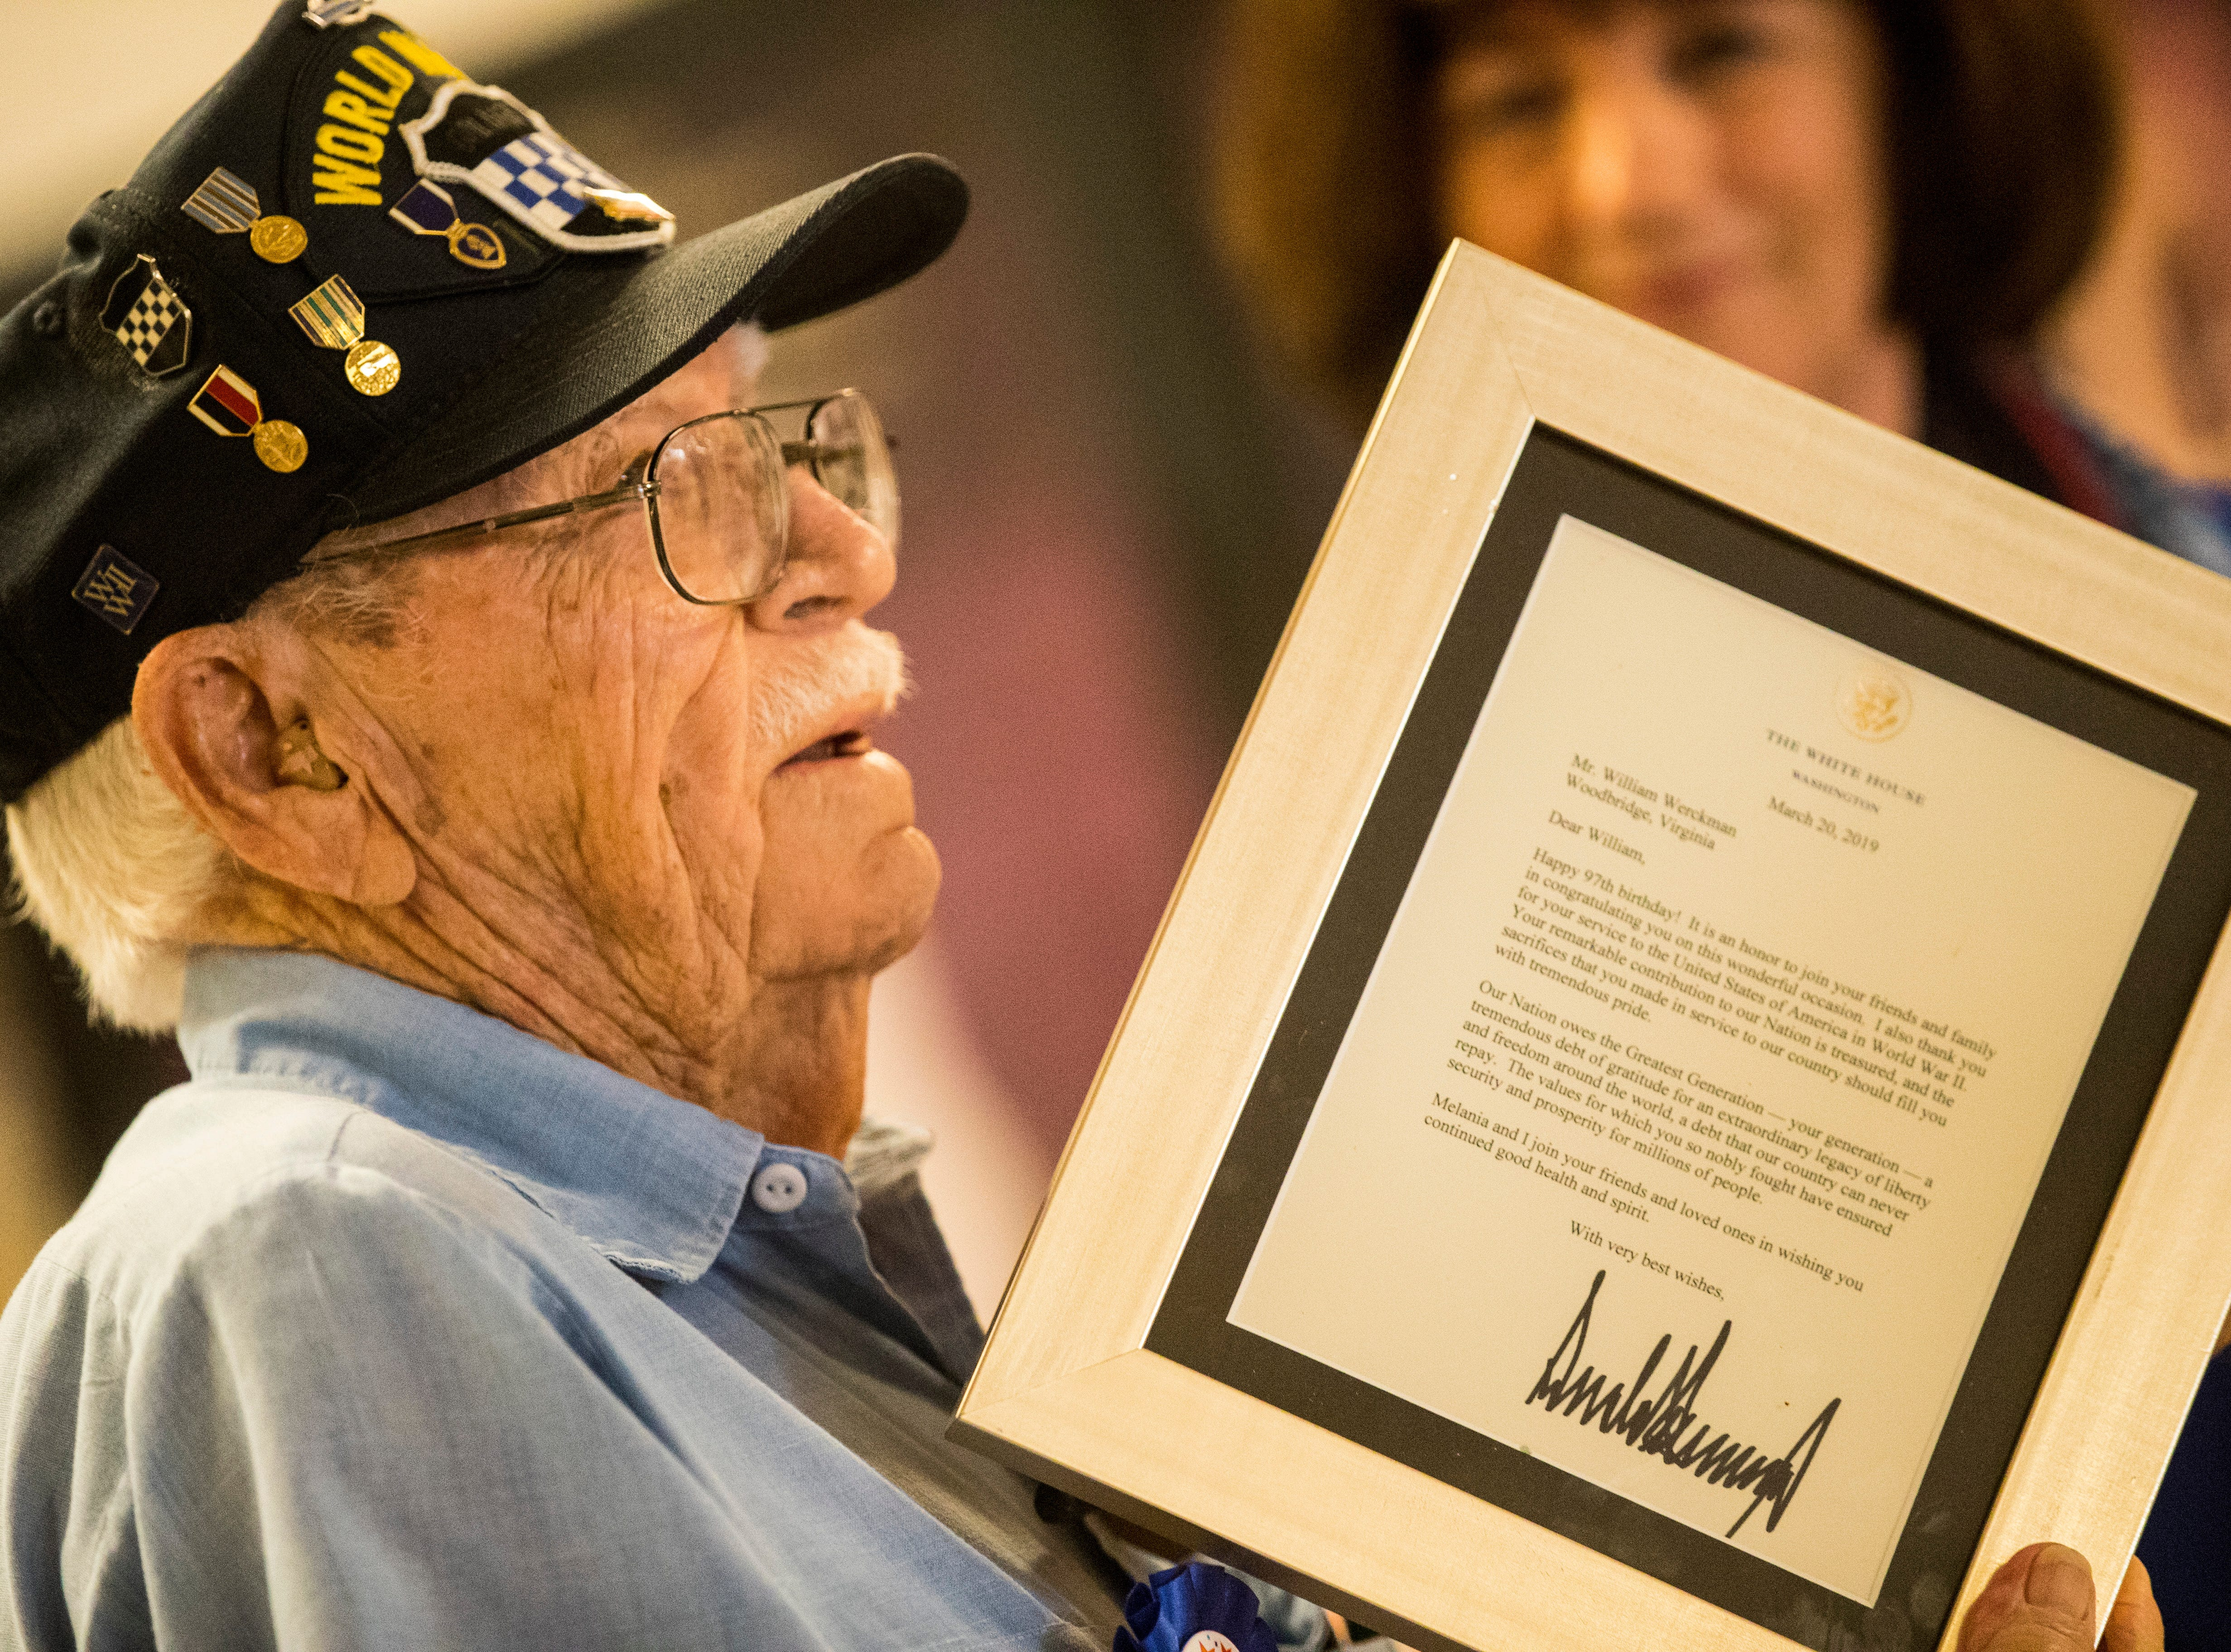 Bill holds a letter from the president of the United States, wishing him a very happy 97th birthday and thanking him for his service. William Workman turned 97. His family and friends had a surprise birthday party at the Southwest Florida Military Museum in Cape Coral. Bill was with the 99th Division that landed in Europe on Nov. 17, 1944, then shipped to Bastogne.